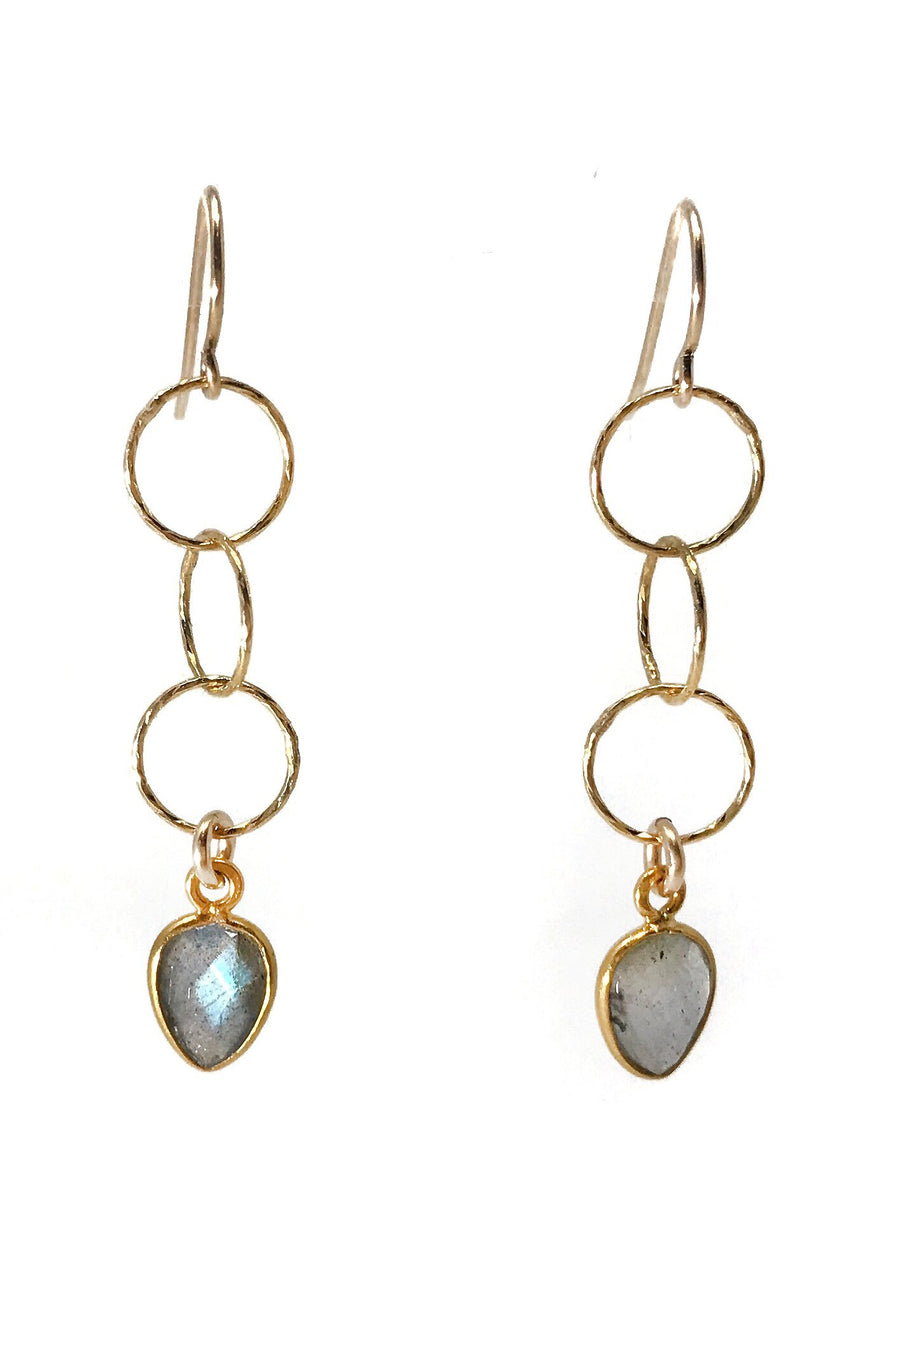 Longevity Labradorite Earrings - ShopMadisonbelle